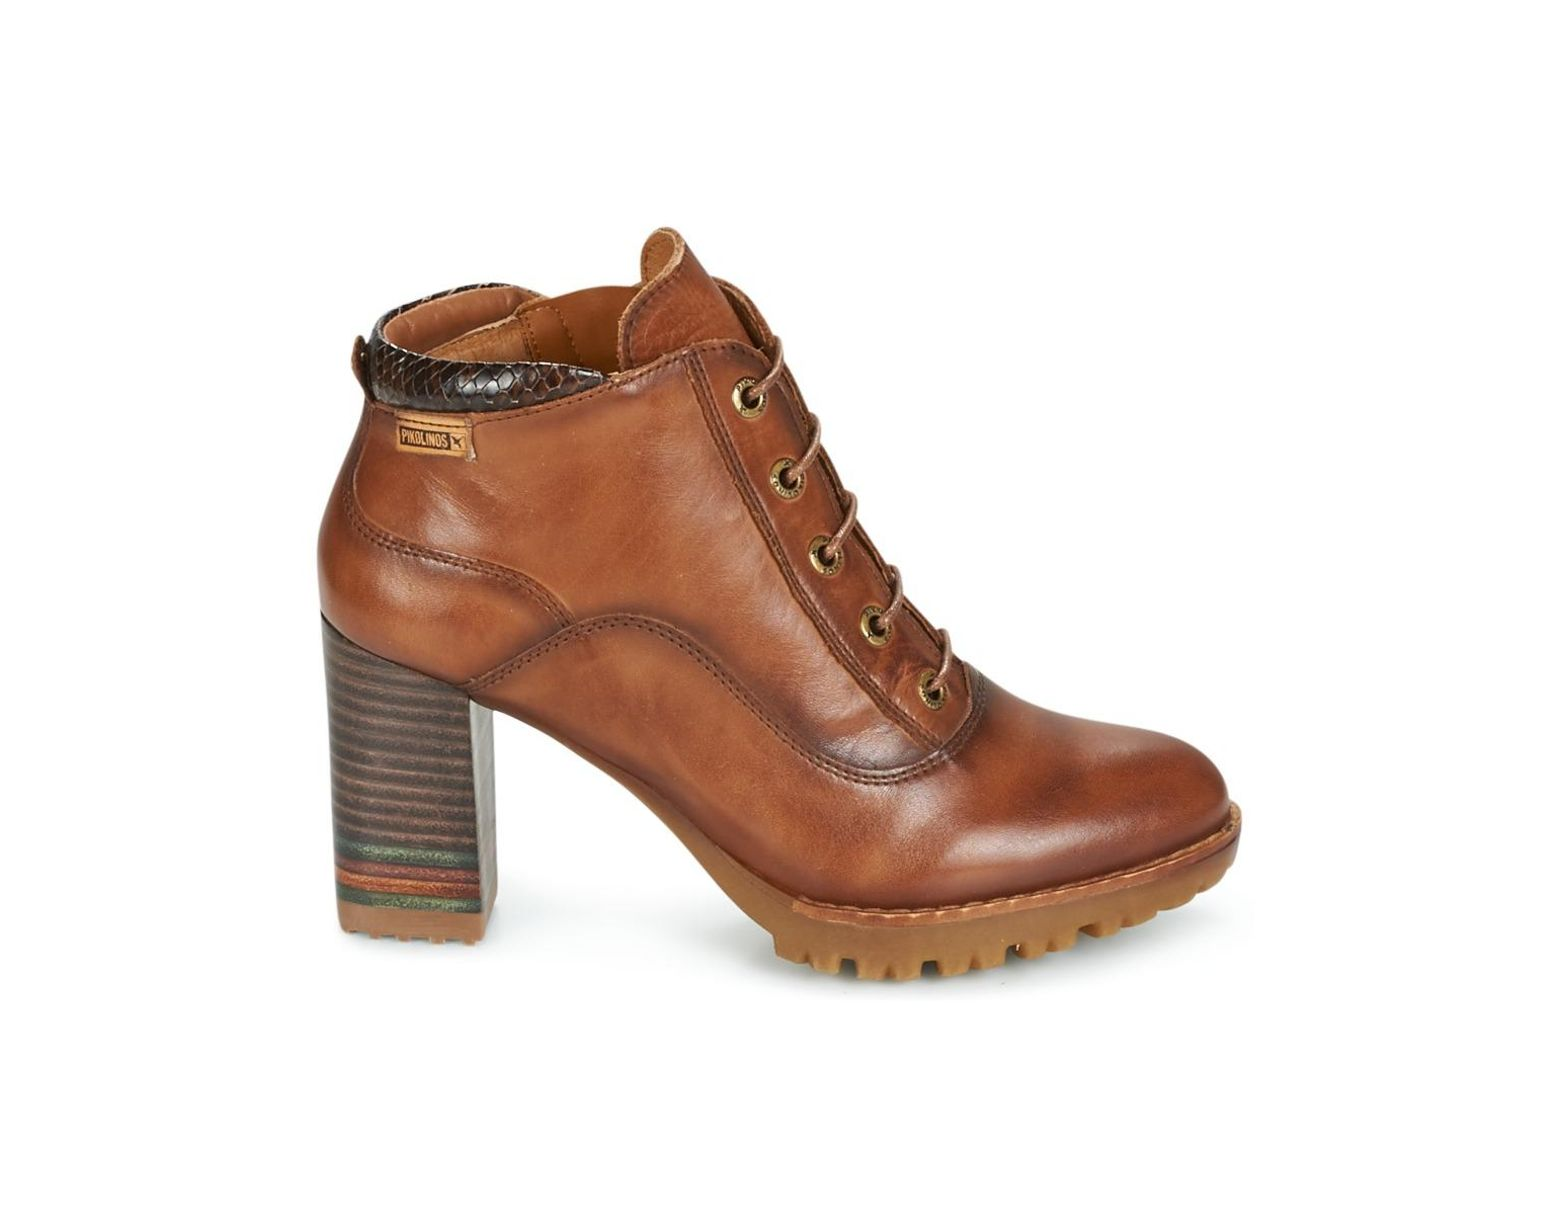 f5c96bf4137 Pikolinos Connelly W7m Low Ankle Boots in Brown - Lyst